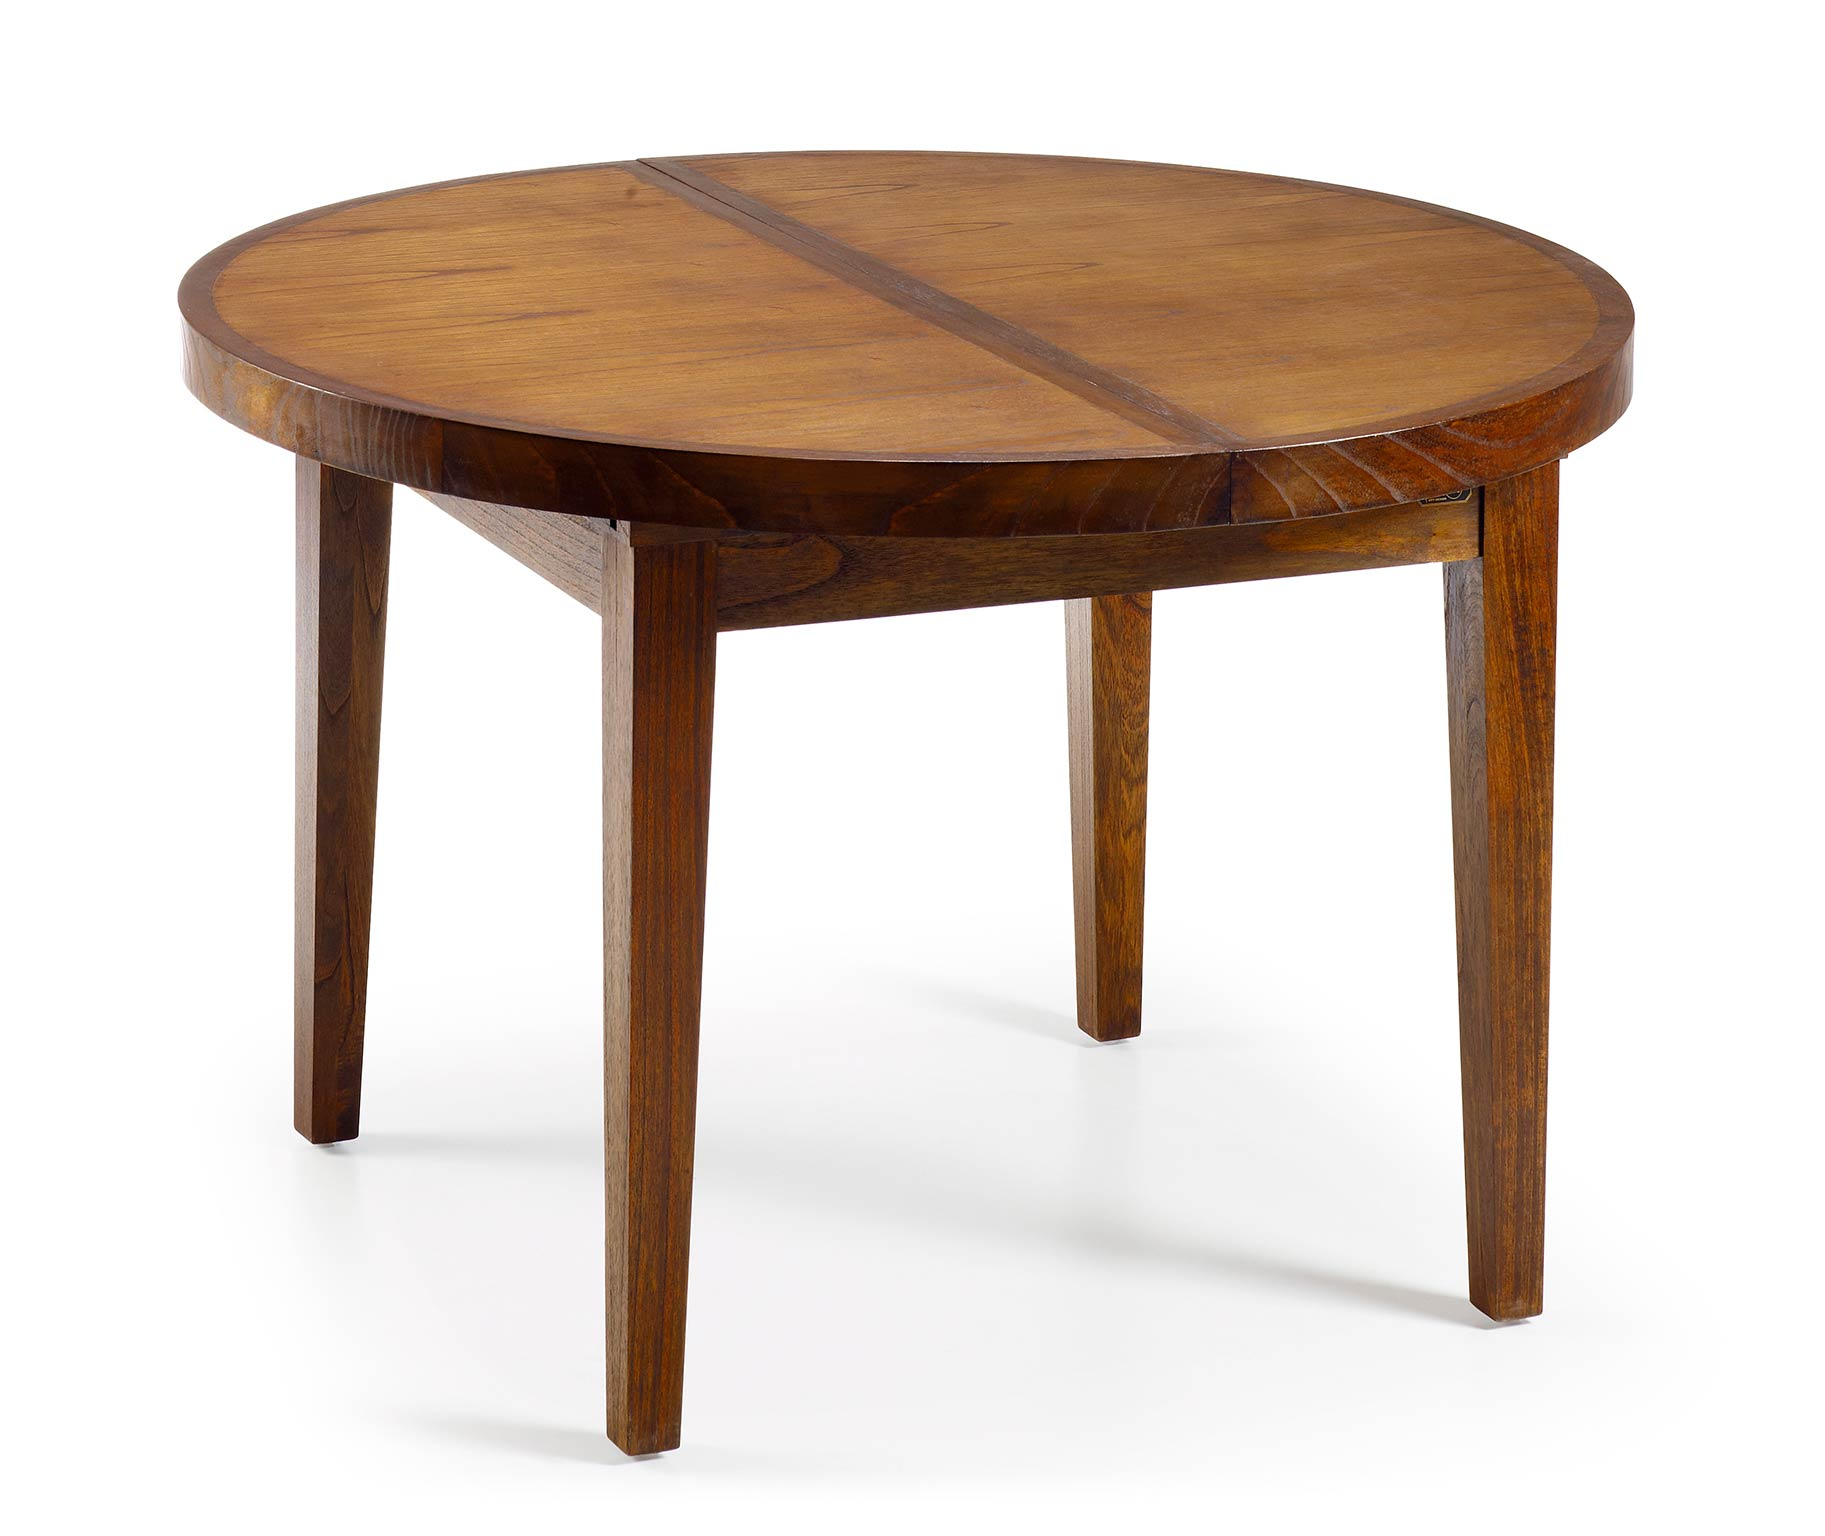 Table ronde en bois avec rallonge portefeuille int gr for Table ronde scandinave avec rallonge